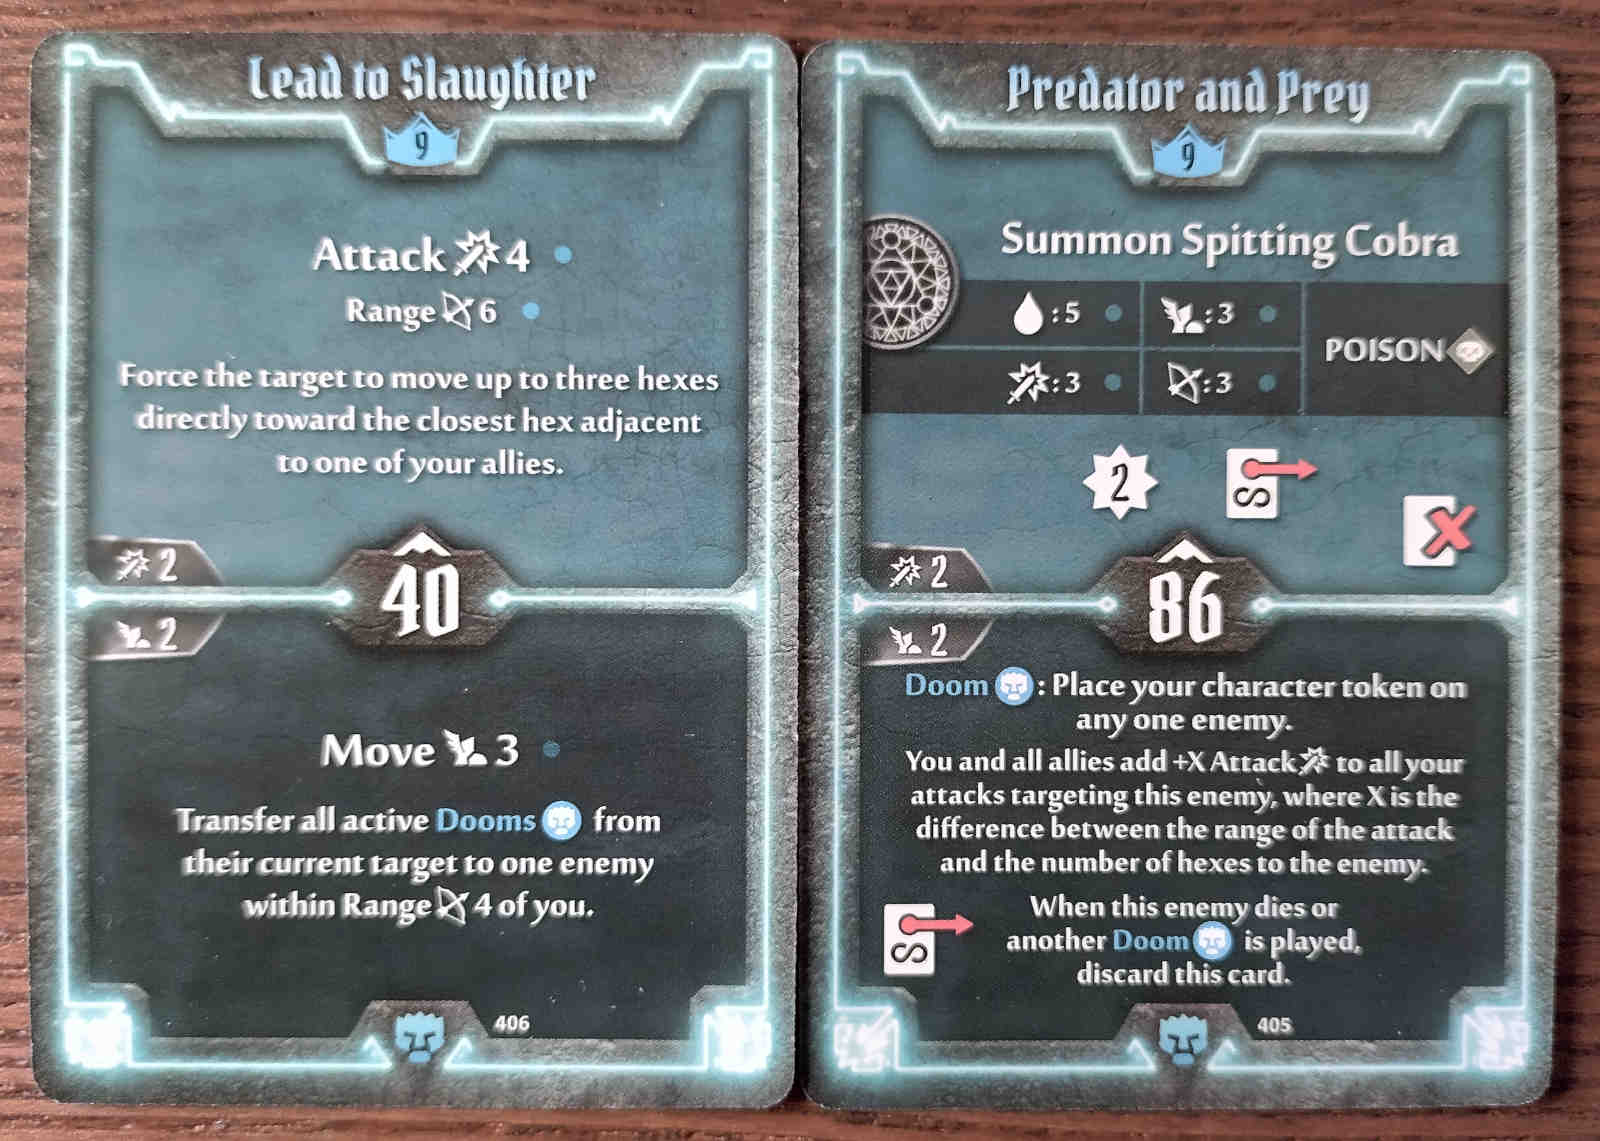 Level 9 Doomstalker cards - Lead to Slaughter and Predator and Prey